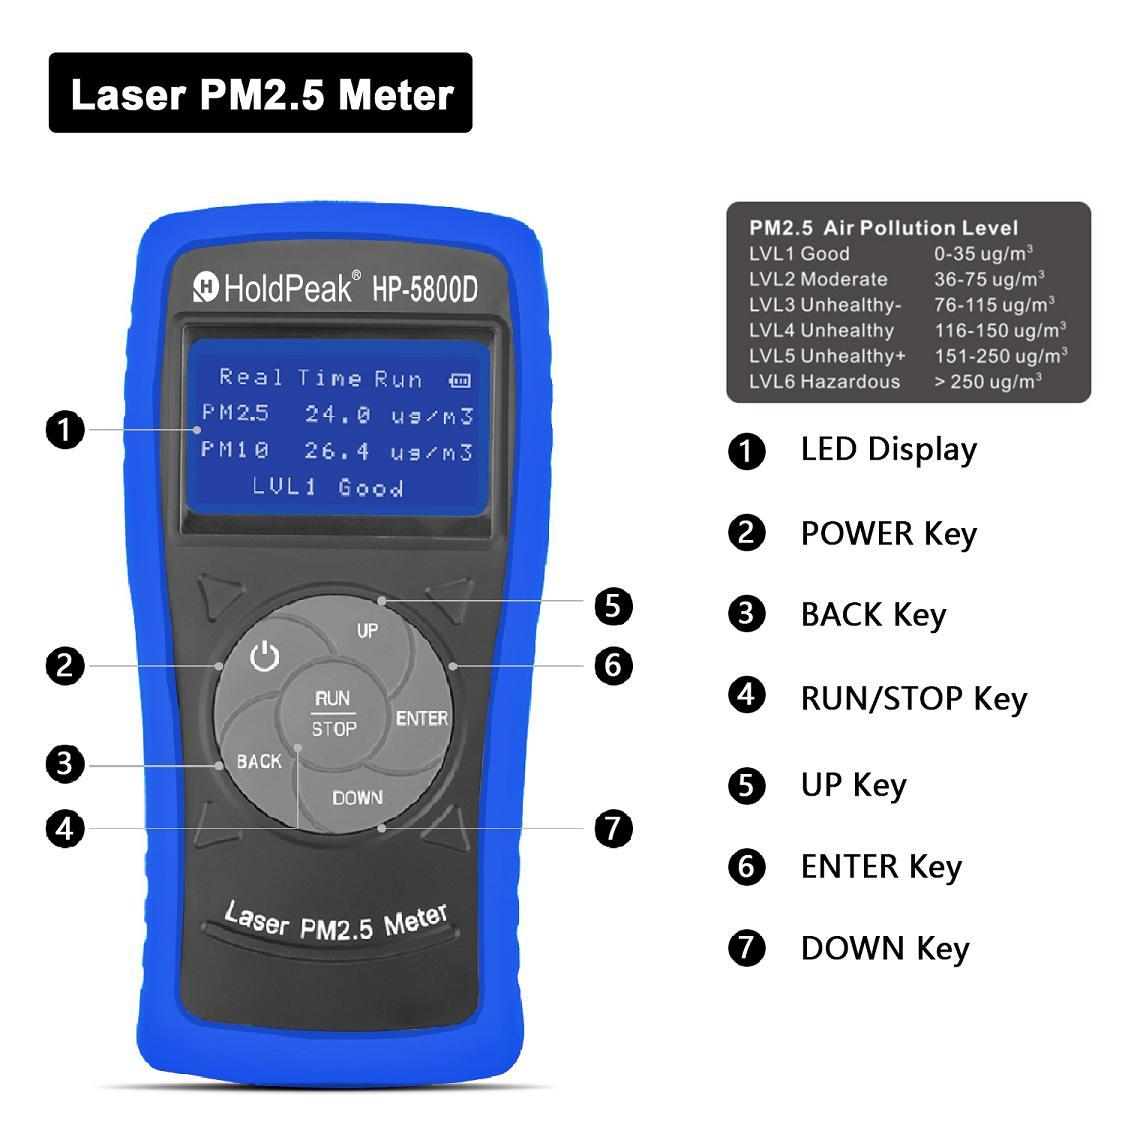 PM2.5 Tester, Digital portable air quality tester for PM2.5 HP-5800D